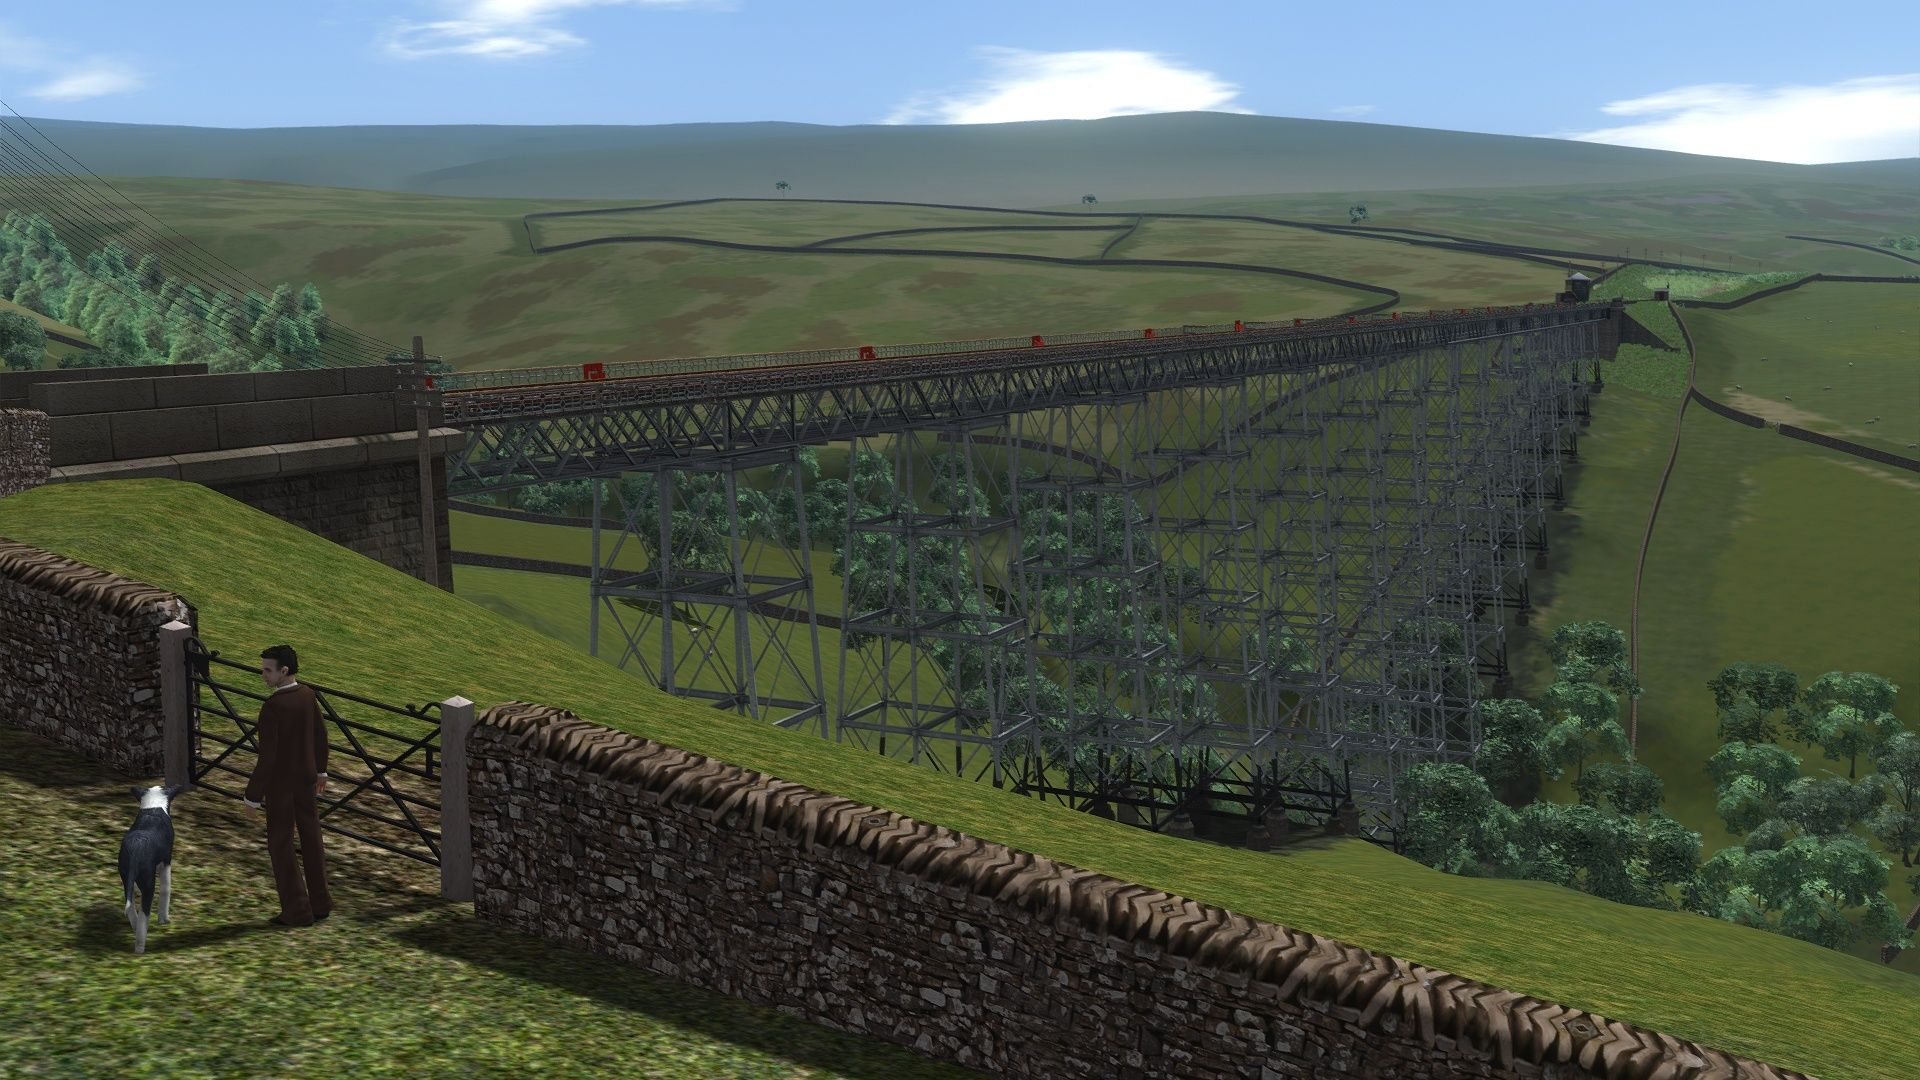 Screenshot_Stainmore, Shap and the Eden Valley_54.49060--2.24820_15-13-23.jpg